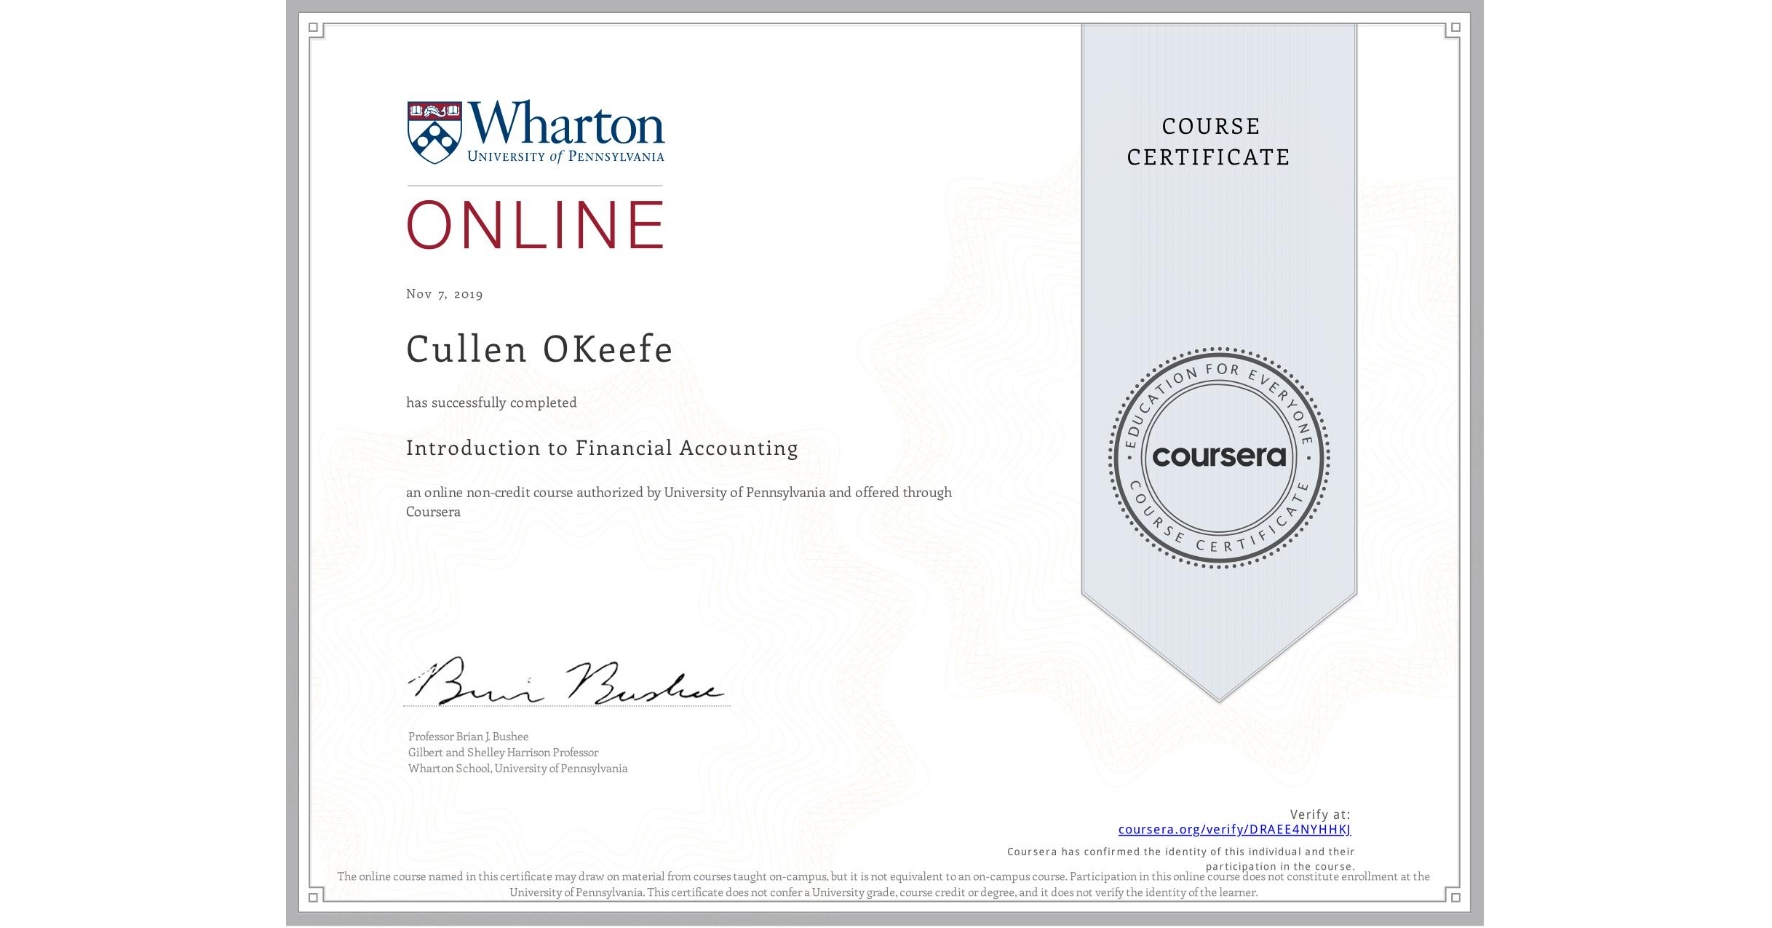 View certificate for Cullen OKeefe, Introduction to Financial Accounting, an online non-credit course authorized by University of Pennsylvania and offered through Coursera